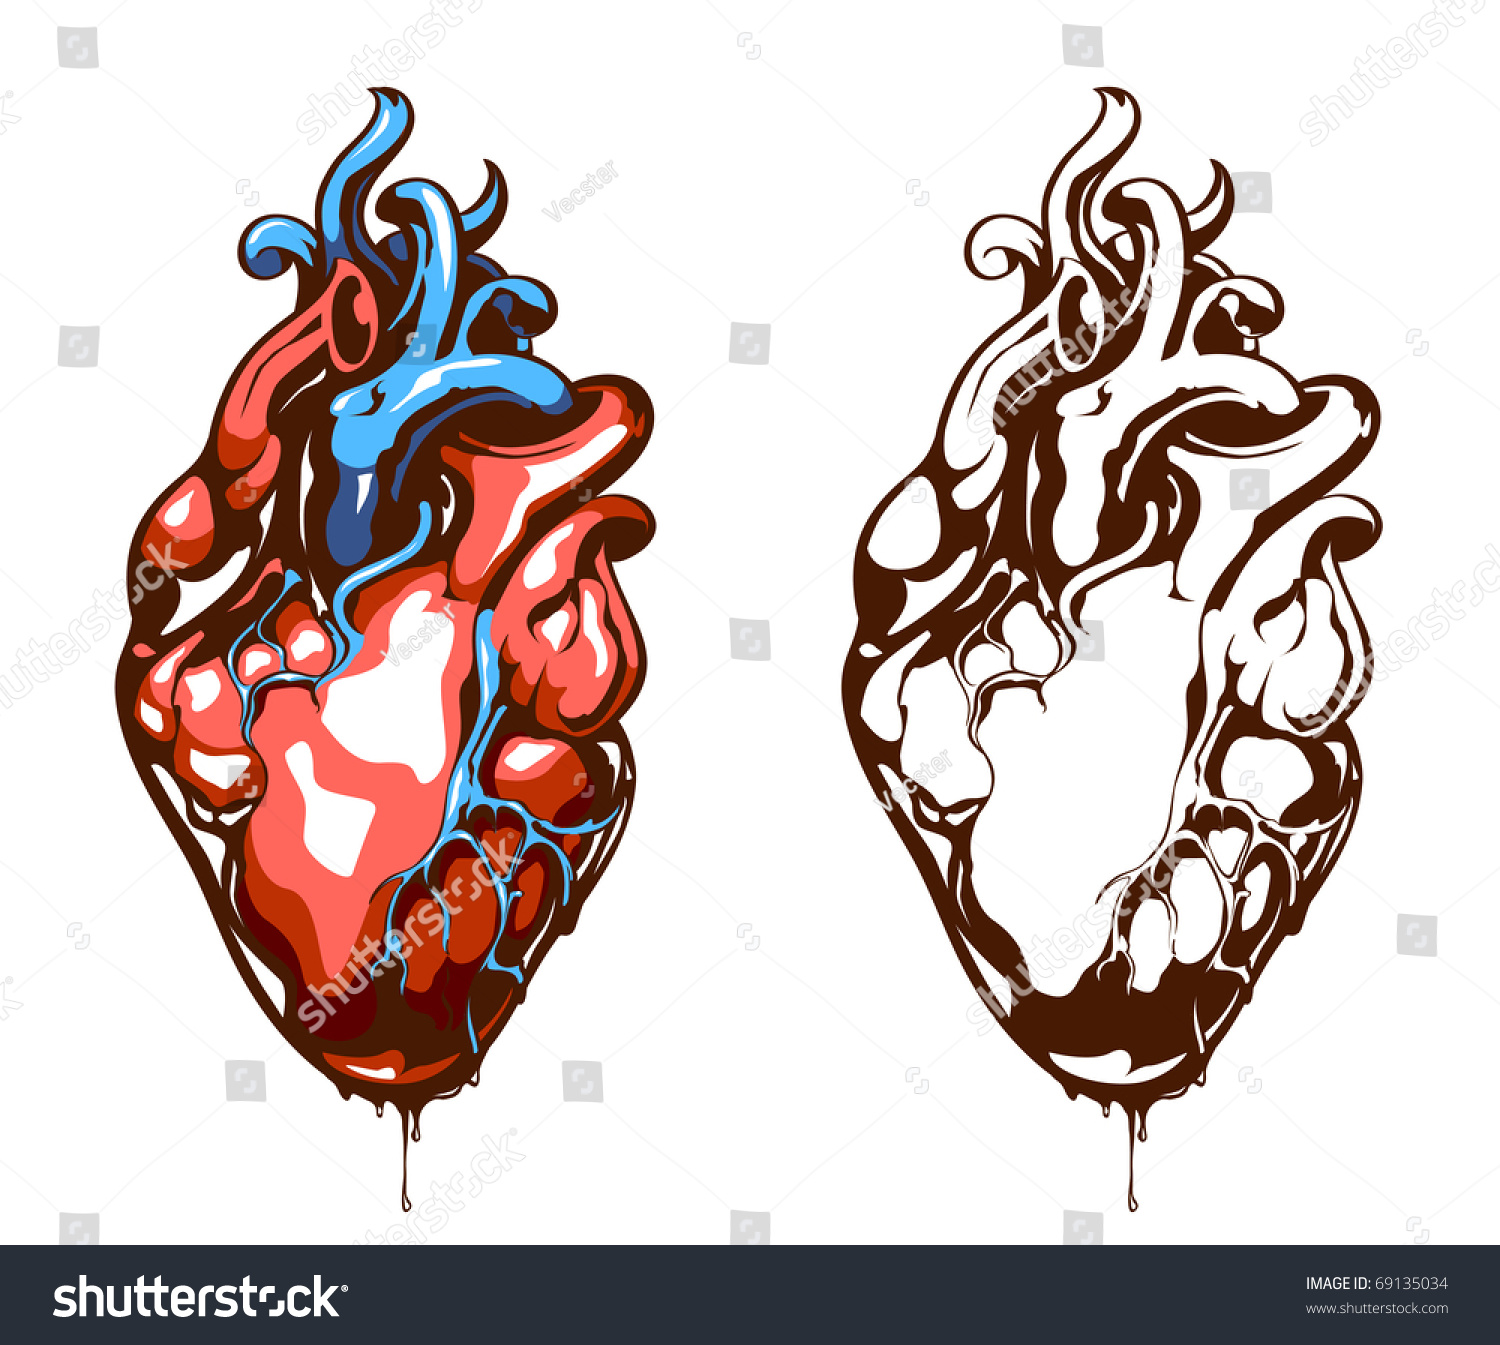 Anatomical Heart Isolated On White Grunge Stock Vector ...